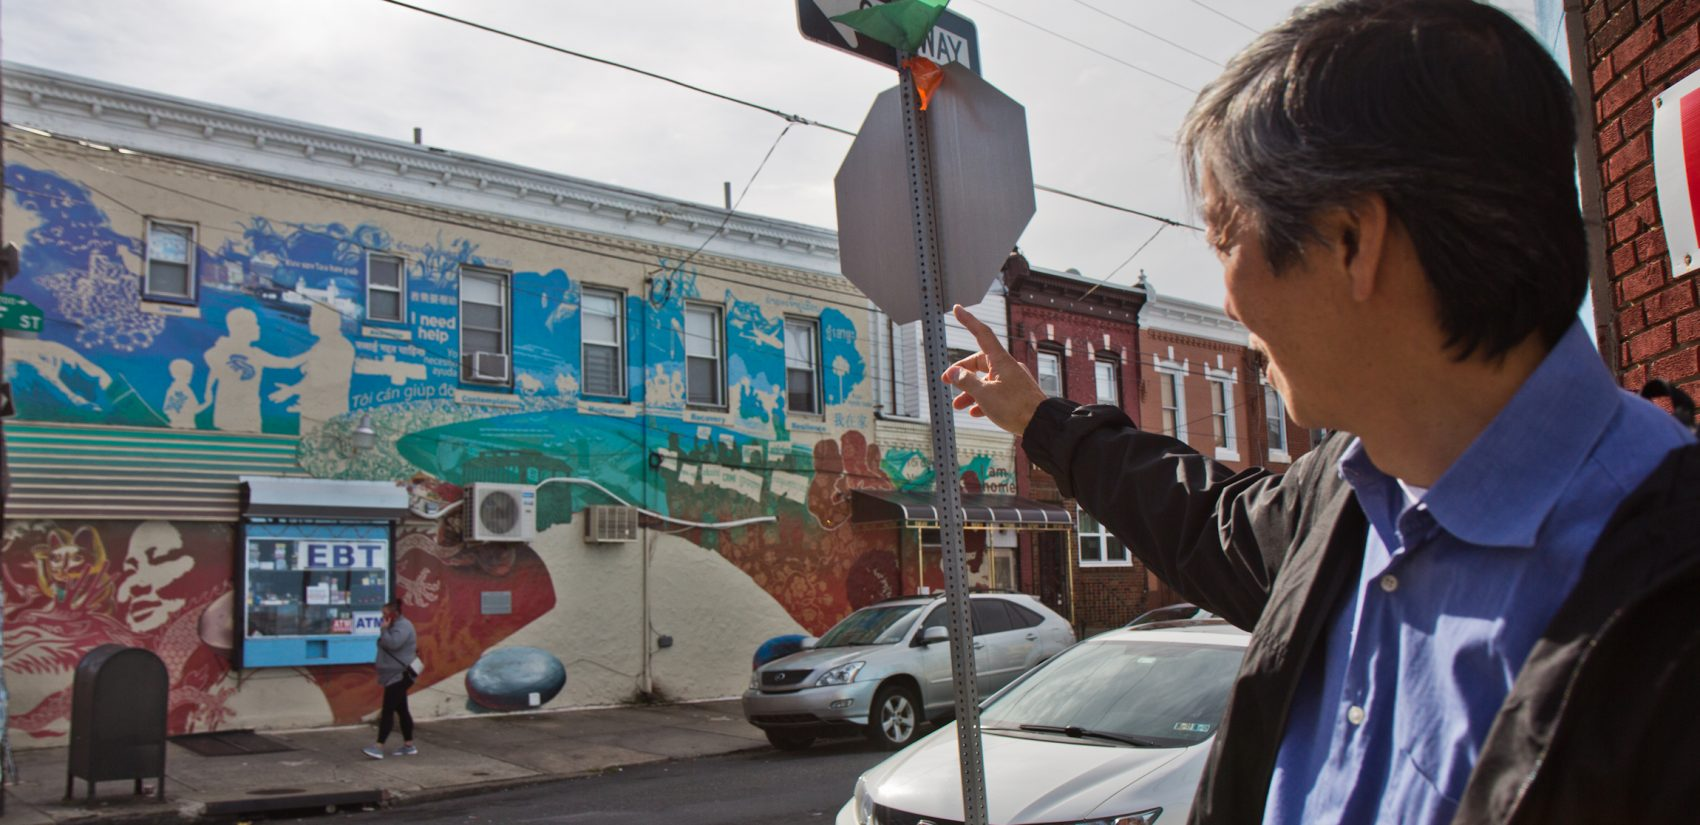 Andy Toy gestures to a mural that created controversy at 7th and Wolf because of it highlighted gambling addiction. (Kimberly Paynter/WHYY)